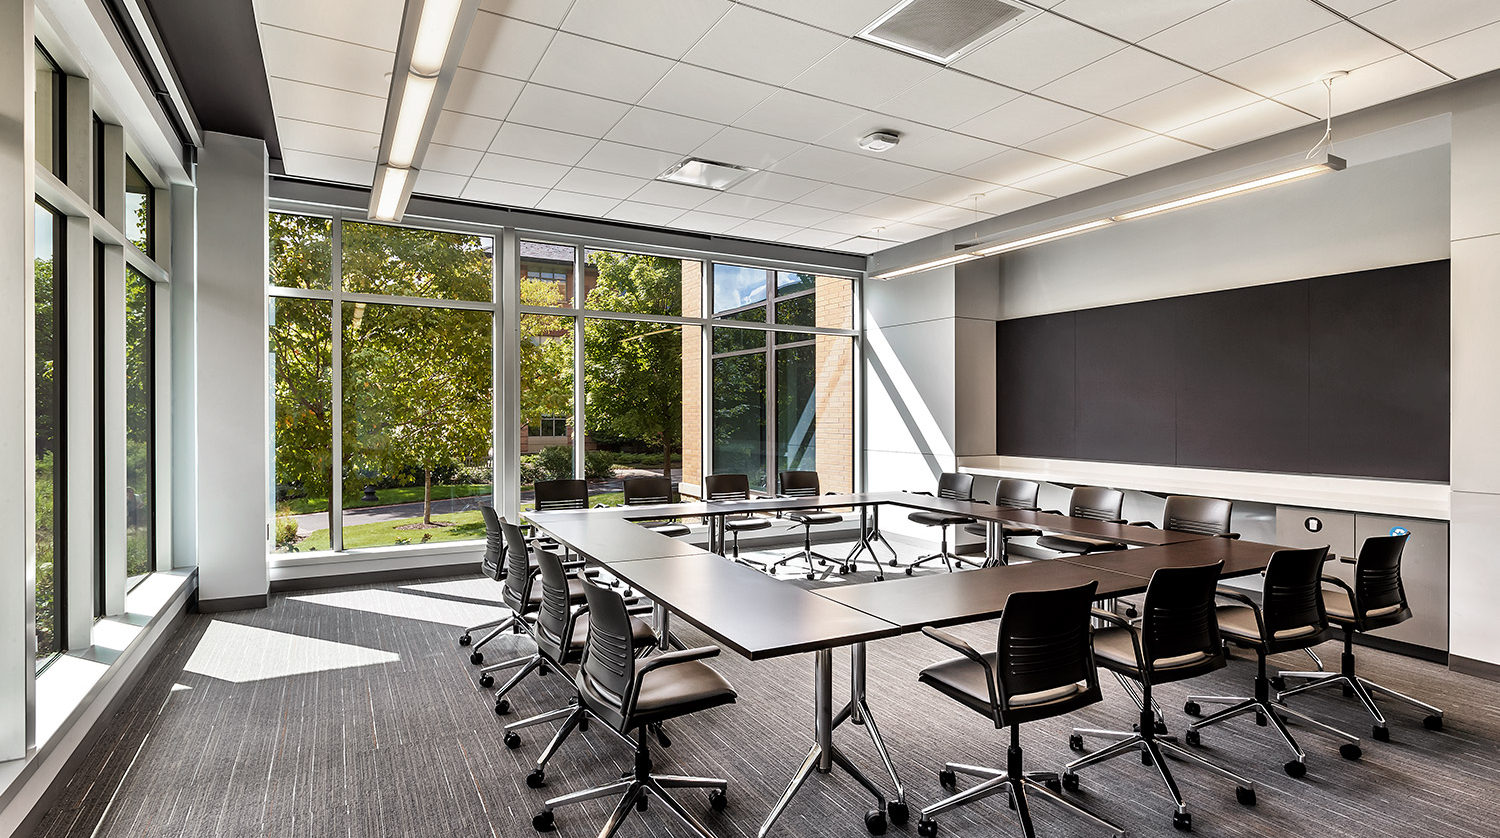 North Park University Johnson Center classroom